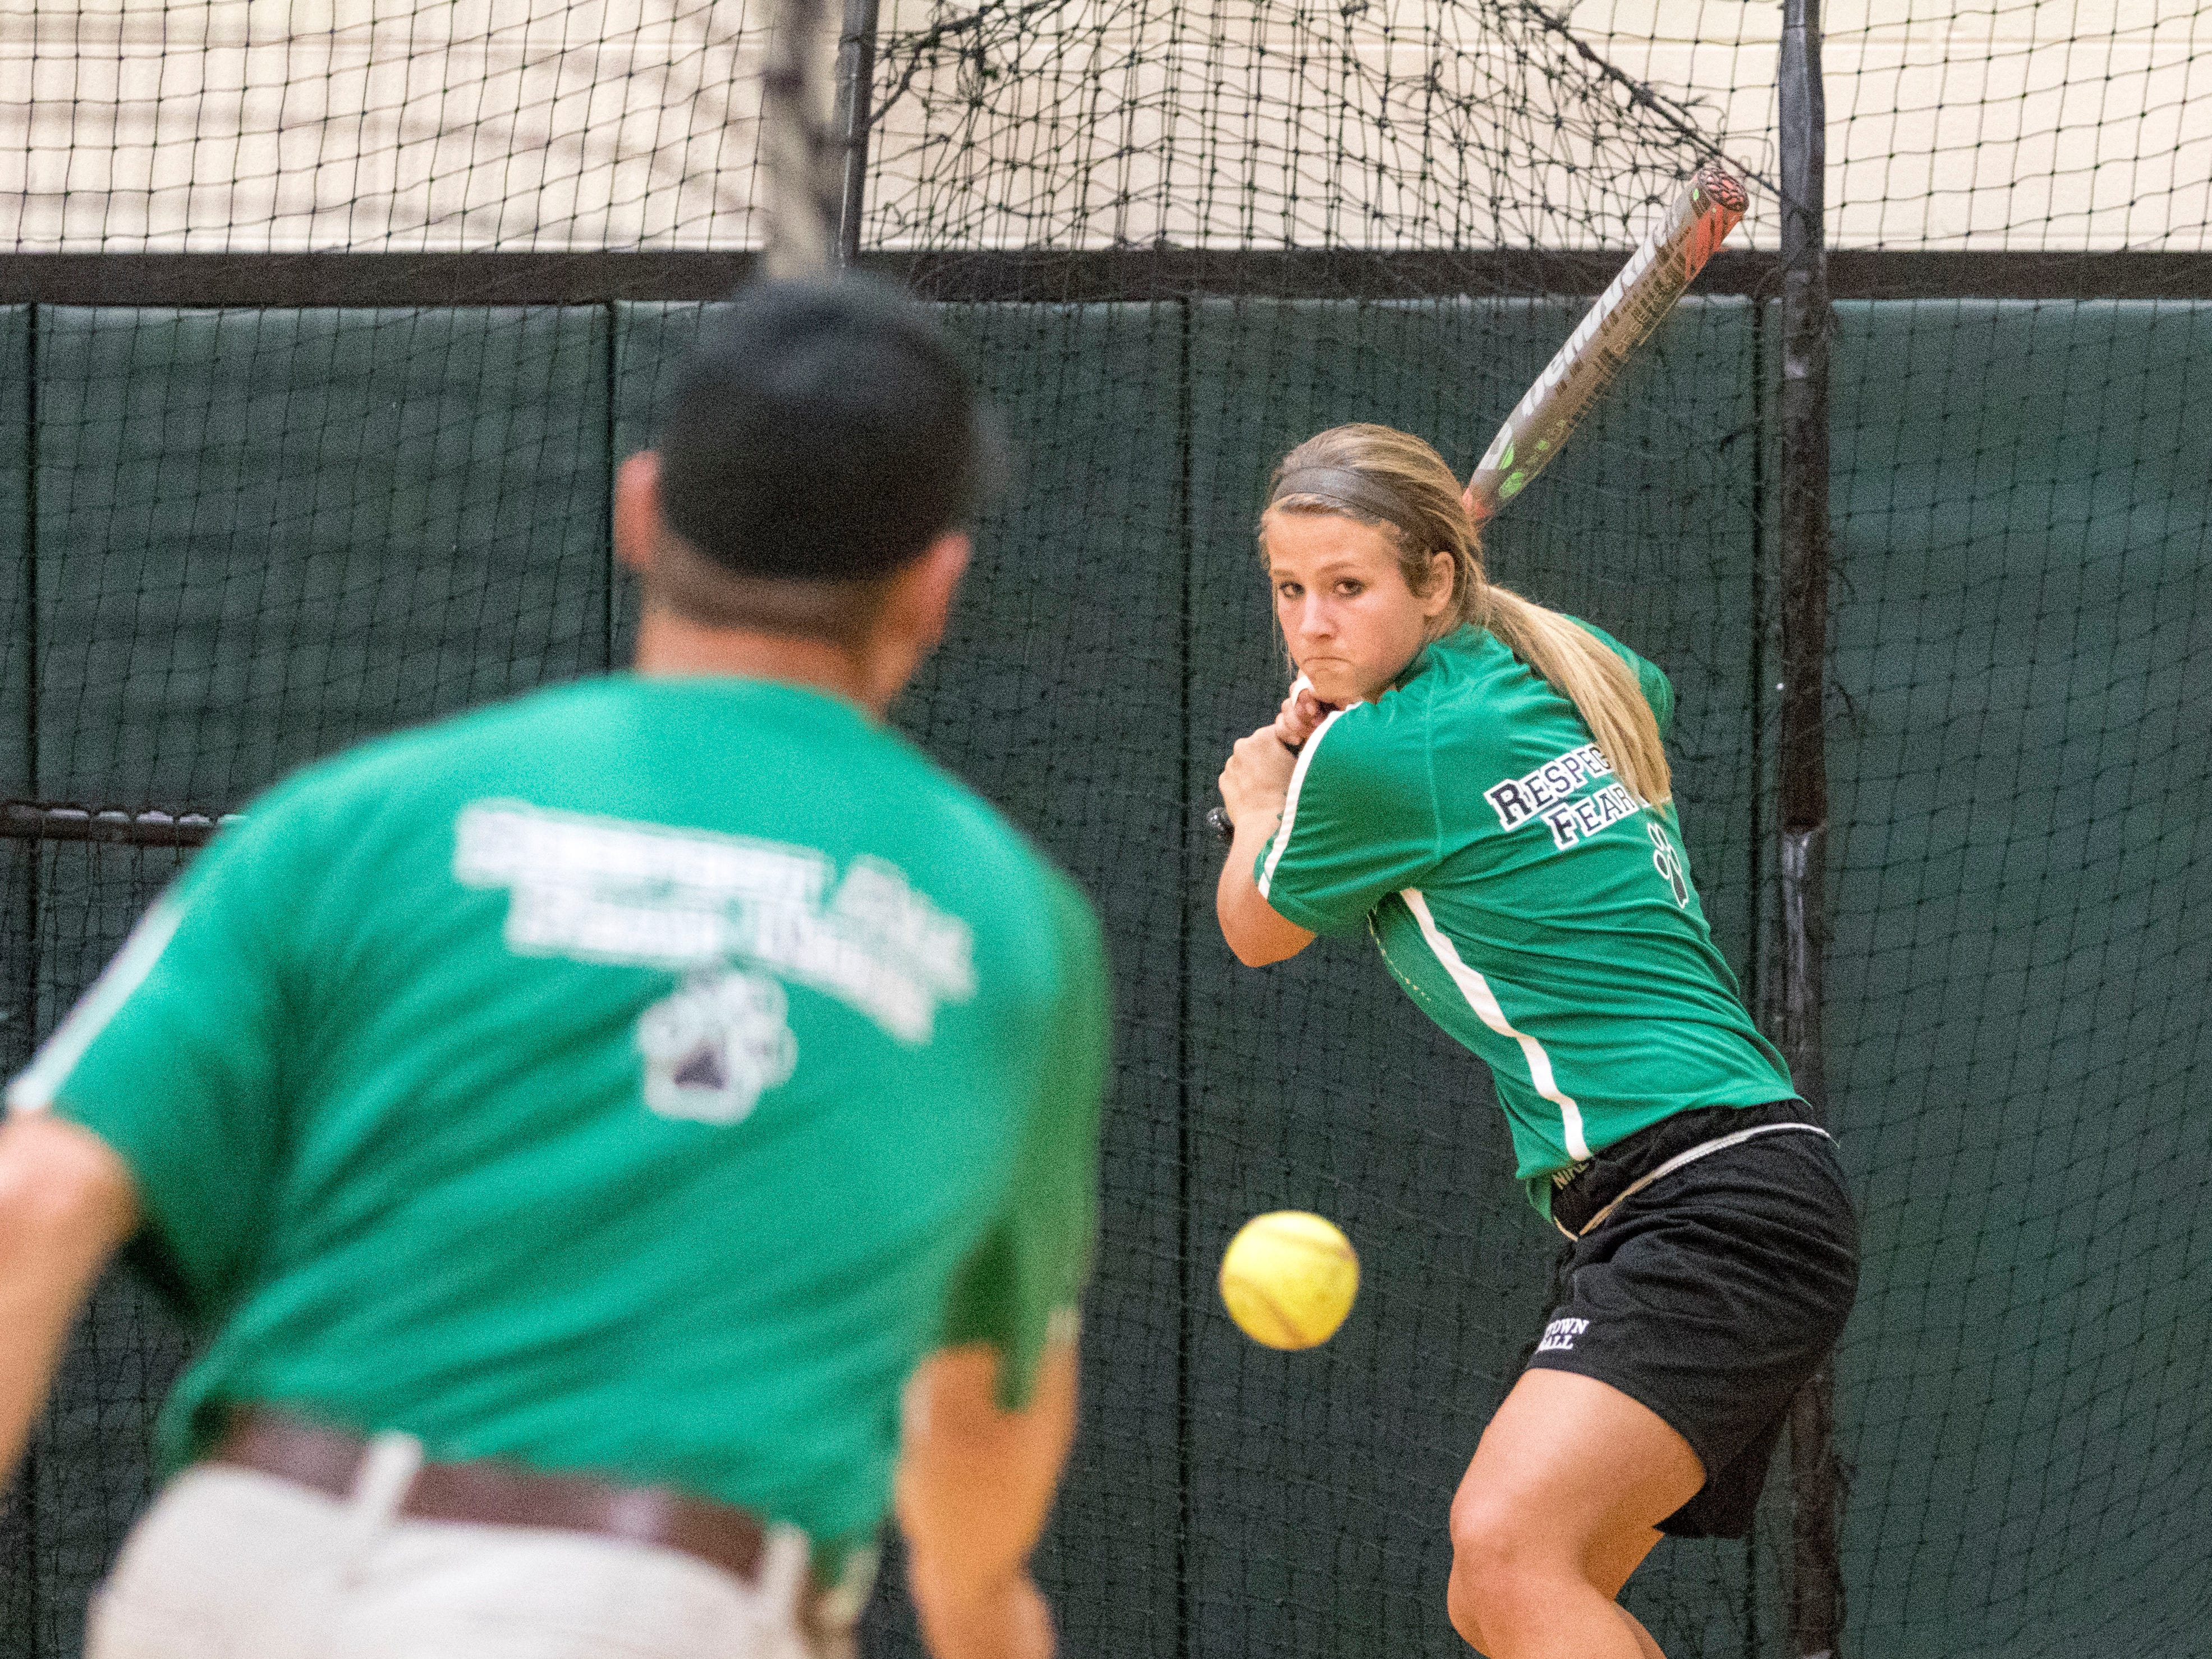 Yorktown softball coach Jeff Berger pitches a ball at senior Katy Johnson at practice on Thursday. Berger formerly was the coach at Cowan and hopes to help the senior-laden Tigers stay at a high level.